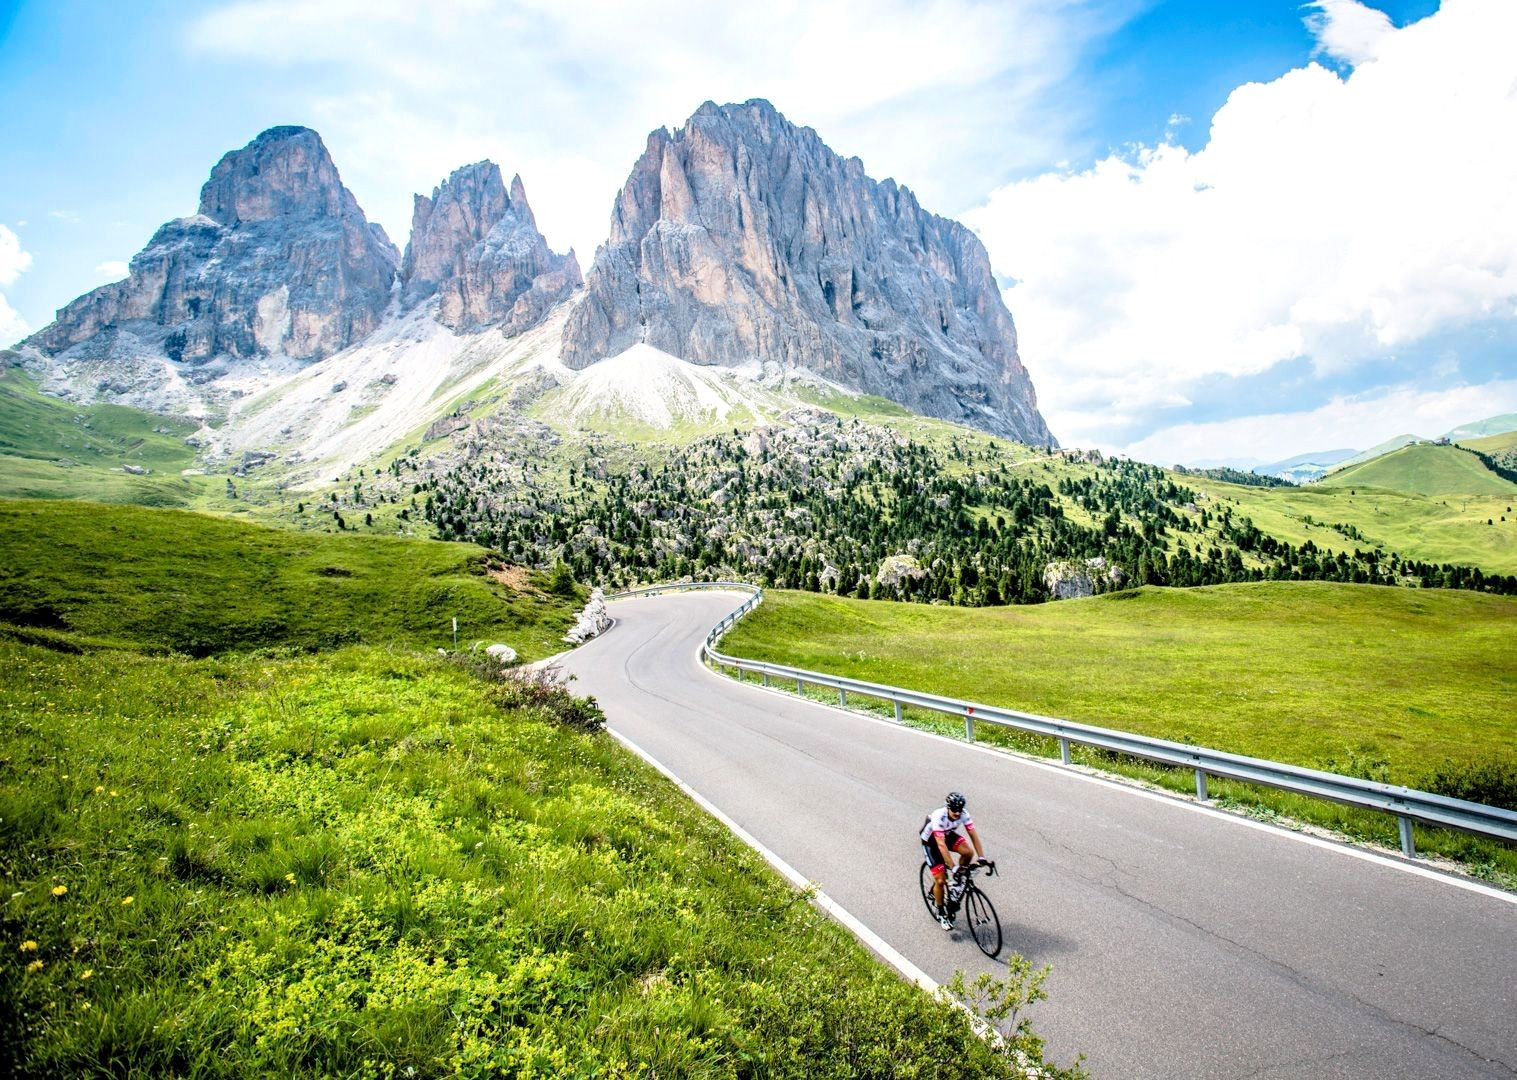 dolomites-guided-road-cycling-holiday-in-italy.jpg - Italy - Italian Dolomites - Guided Road Cycling Holiday - Road Cycling